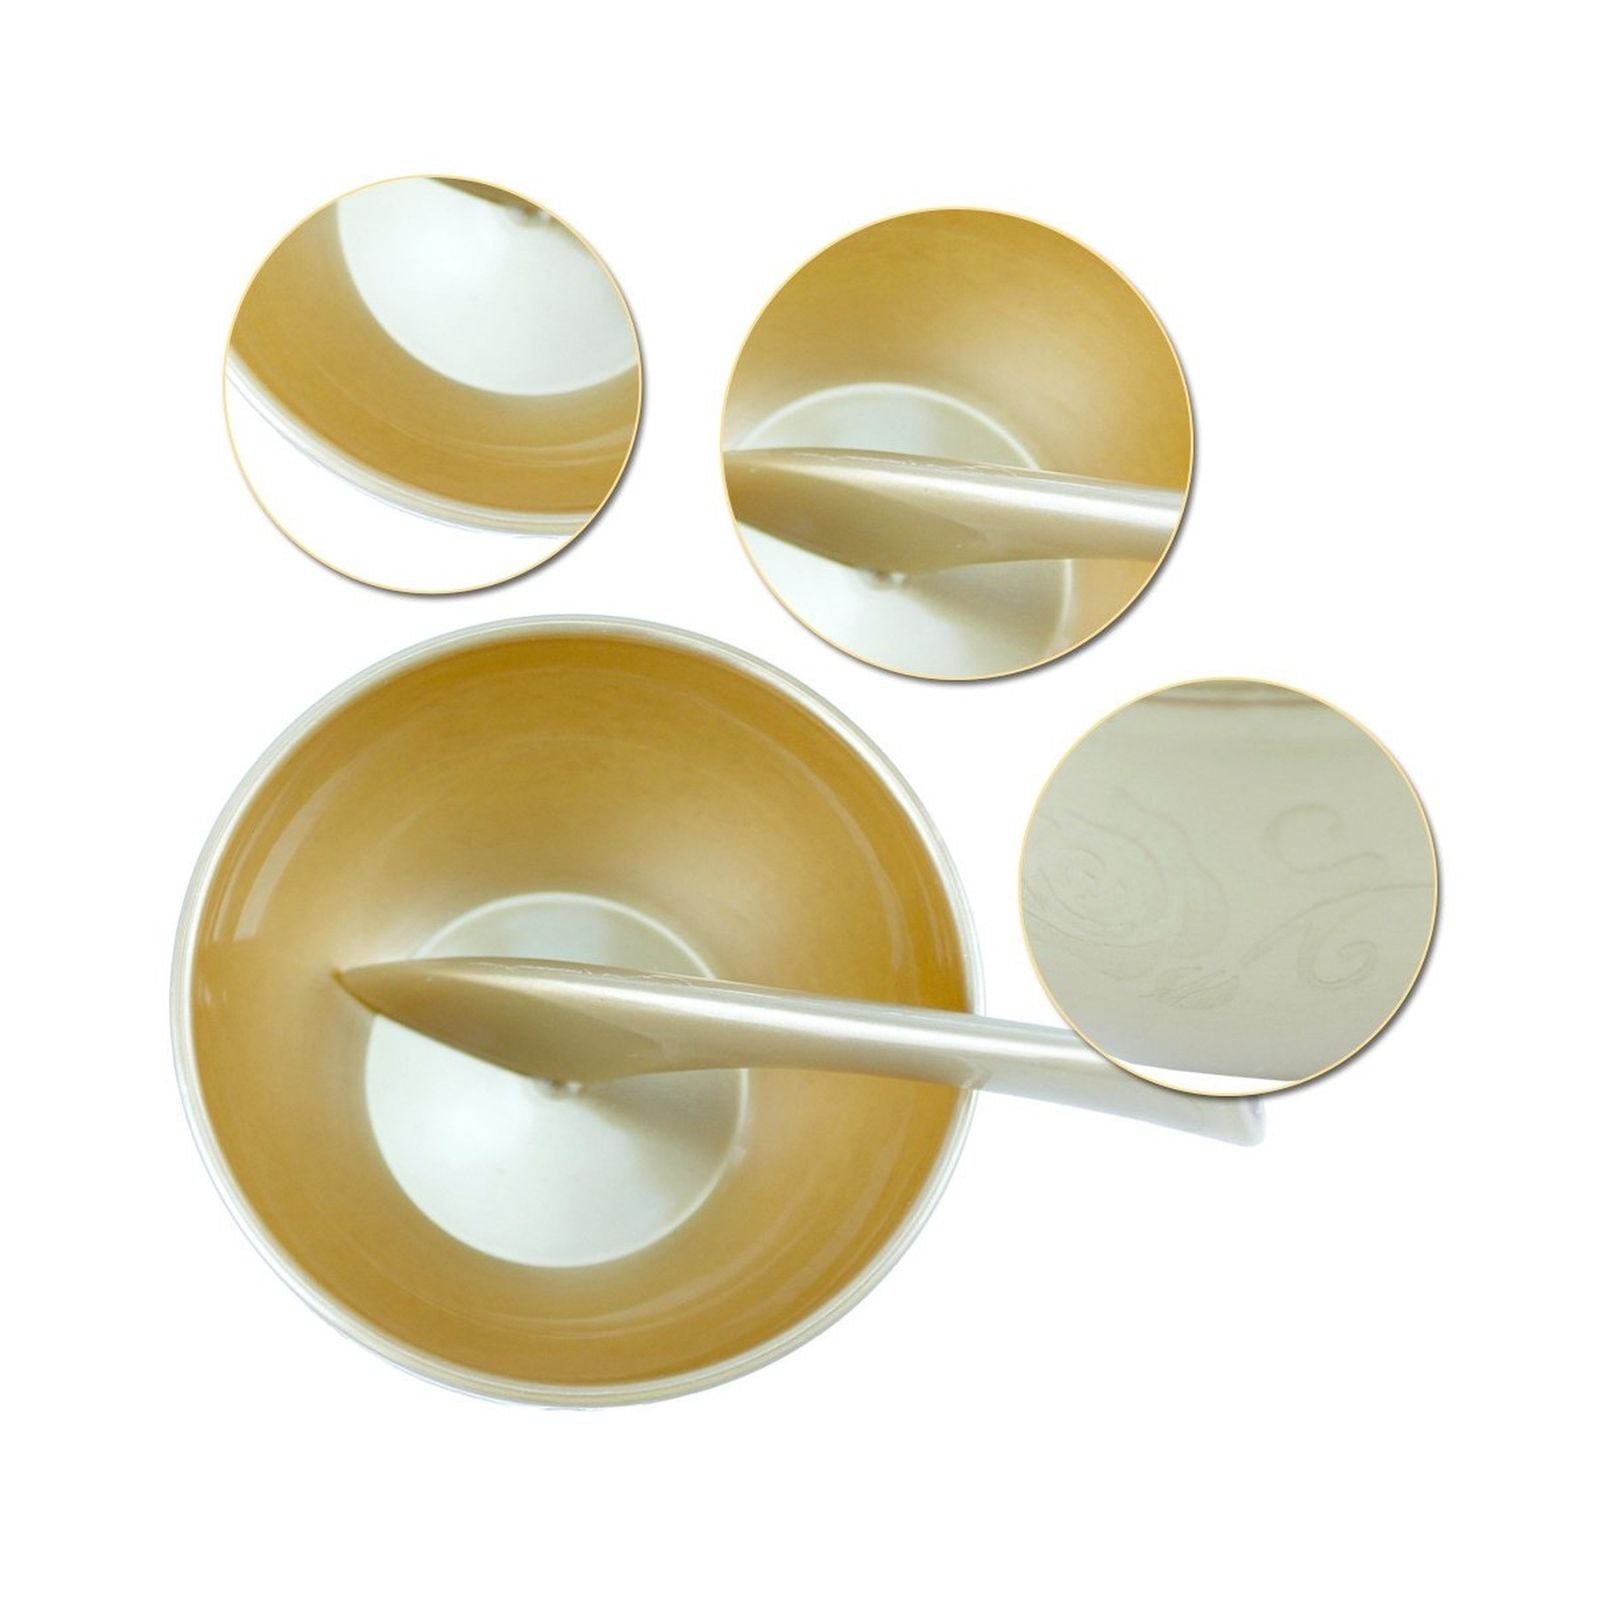 Golden Professional Facial Mask Mixing Bowl Spatula for Skin Care With Cover